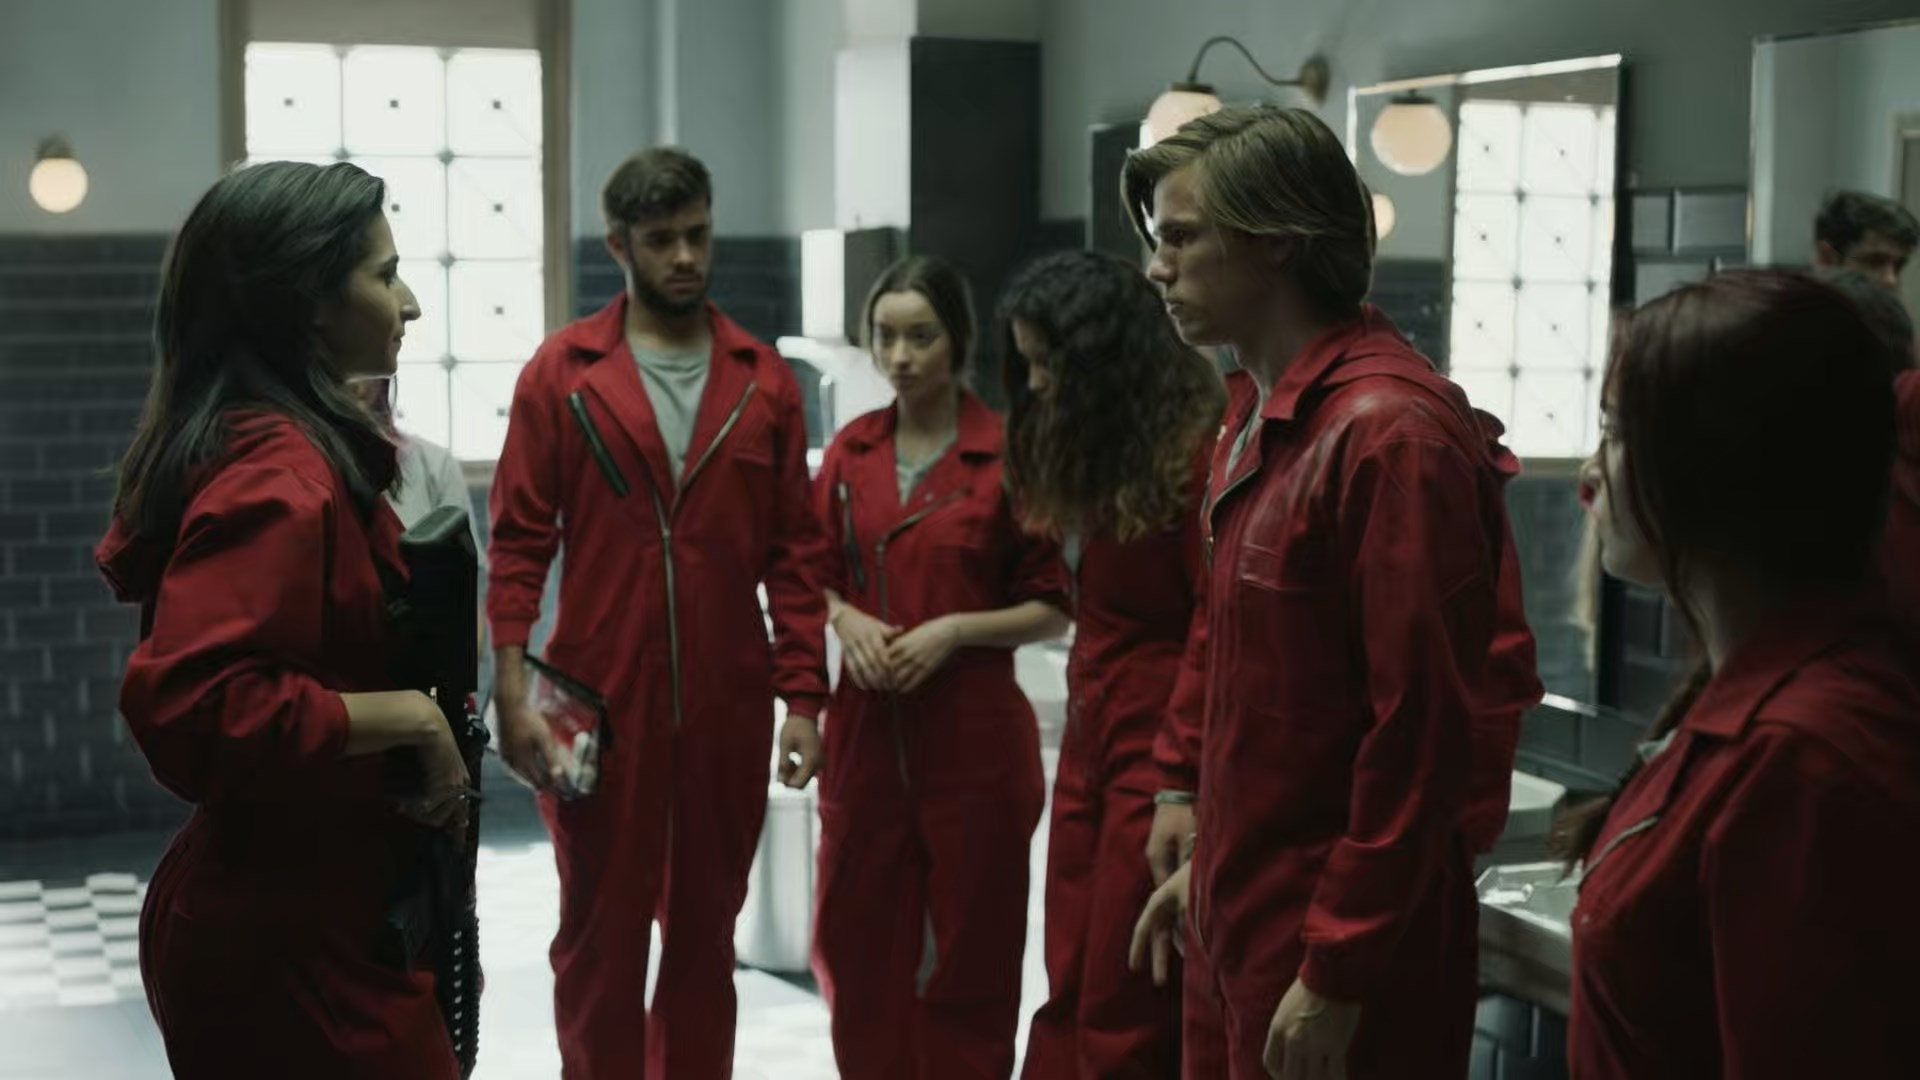 Money-Heist-S01-E08-Ep13-1080p-NF-WEB-DL-DD-5-1-x264-Telly-new-mkv-snapshot-01-29-21-2021-02-20-19-0